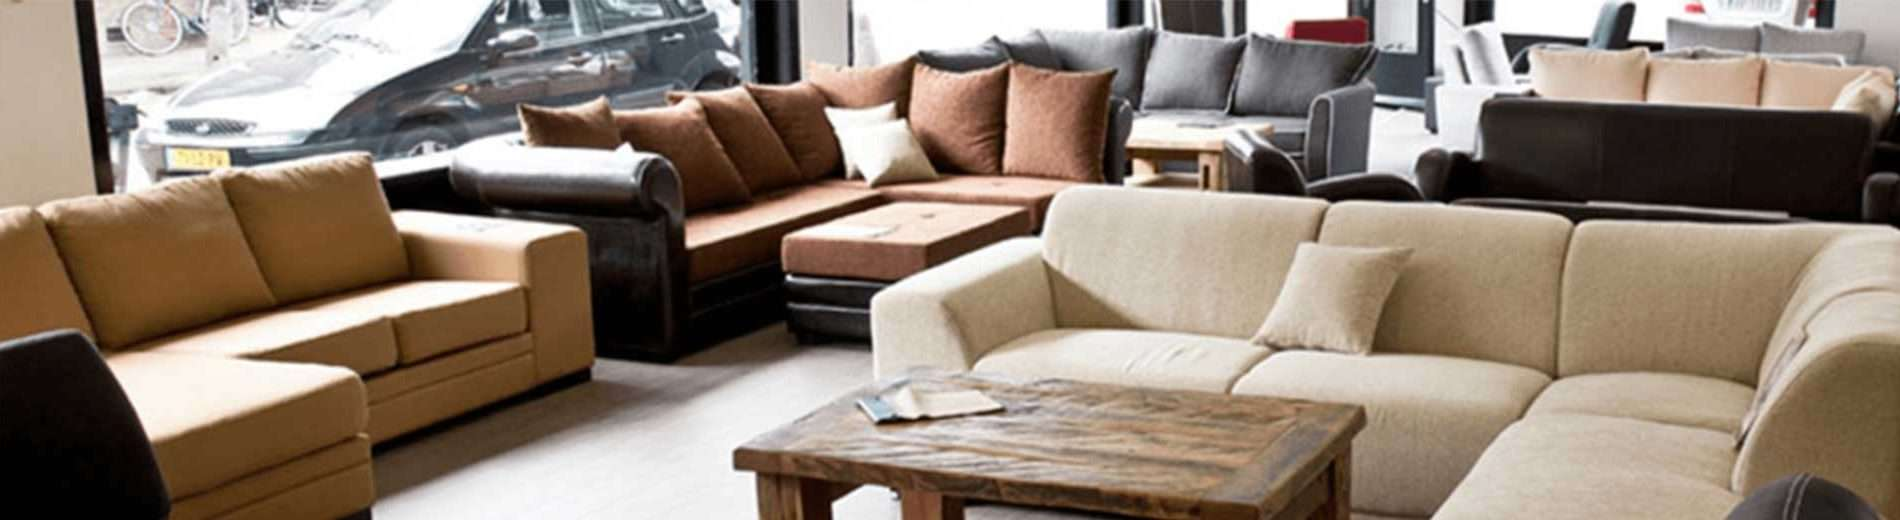 Tapos-Furniture--chairs,barchairs,armchairs,sofas